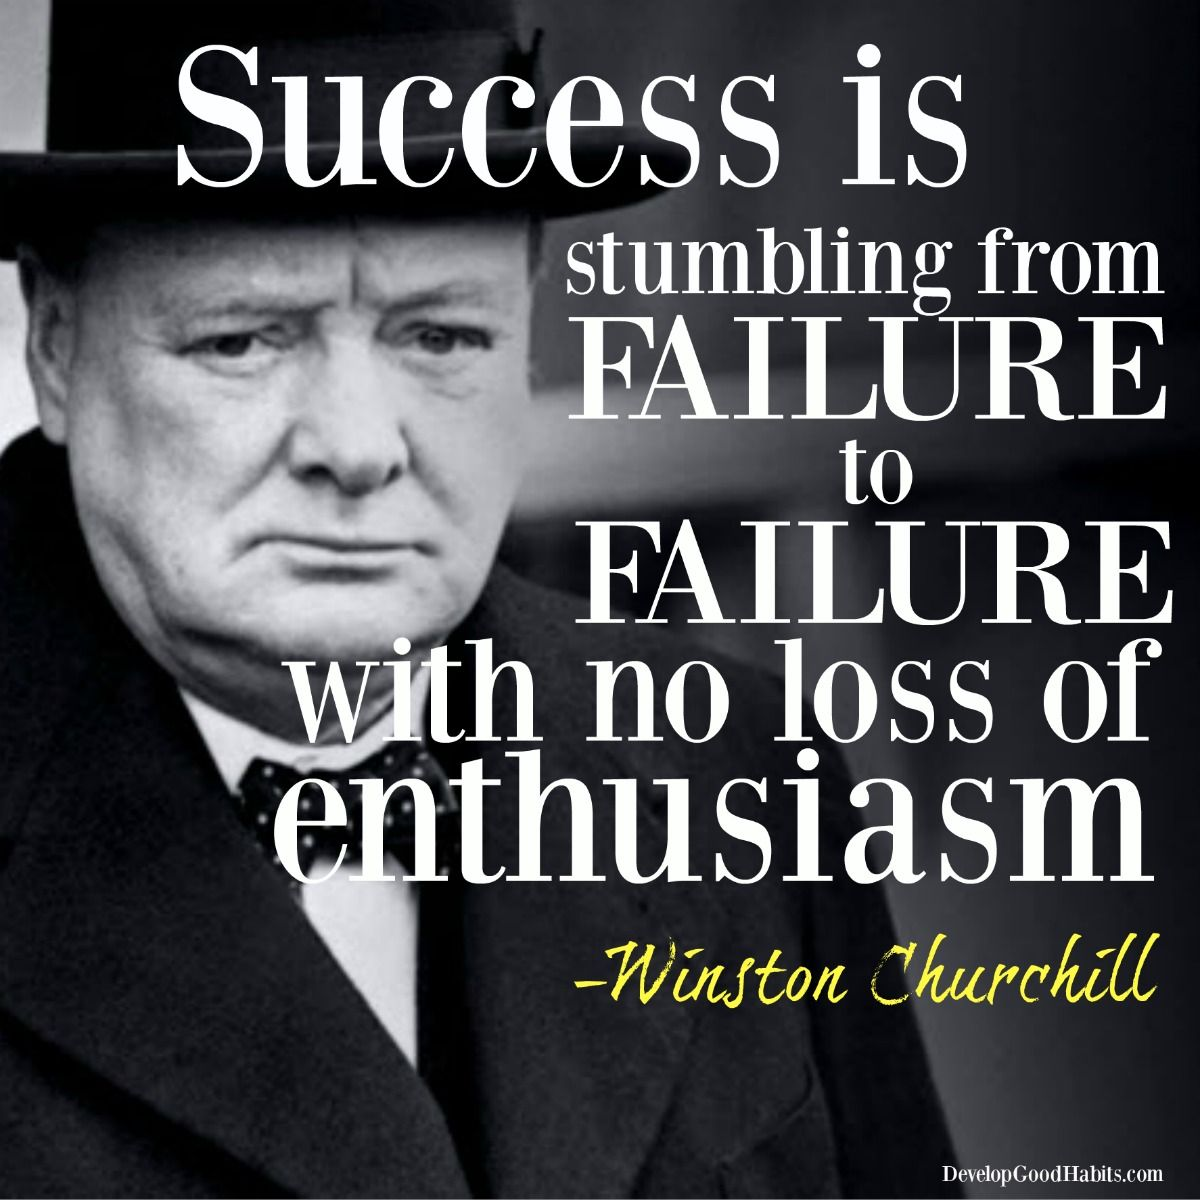 Winston Churchill Quote On Failure: 10 Picture Quotes On Failure And Success (from Histories